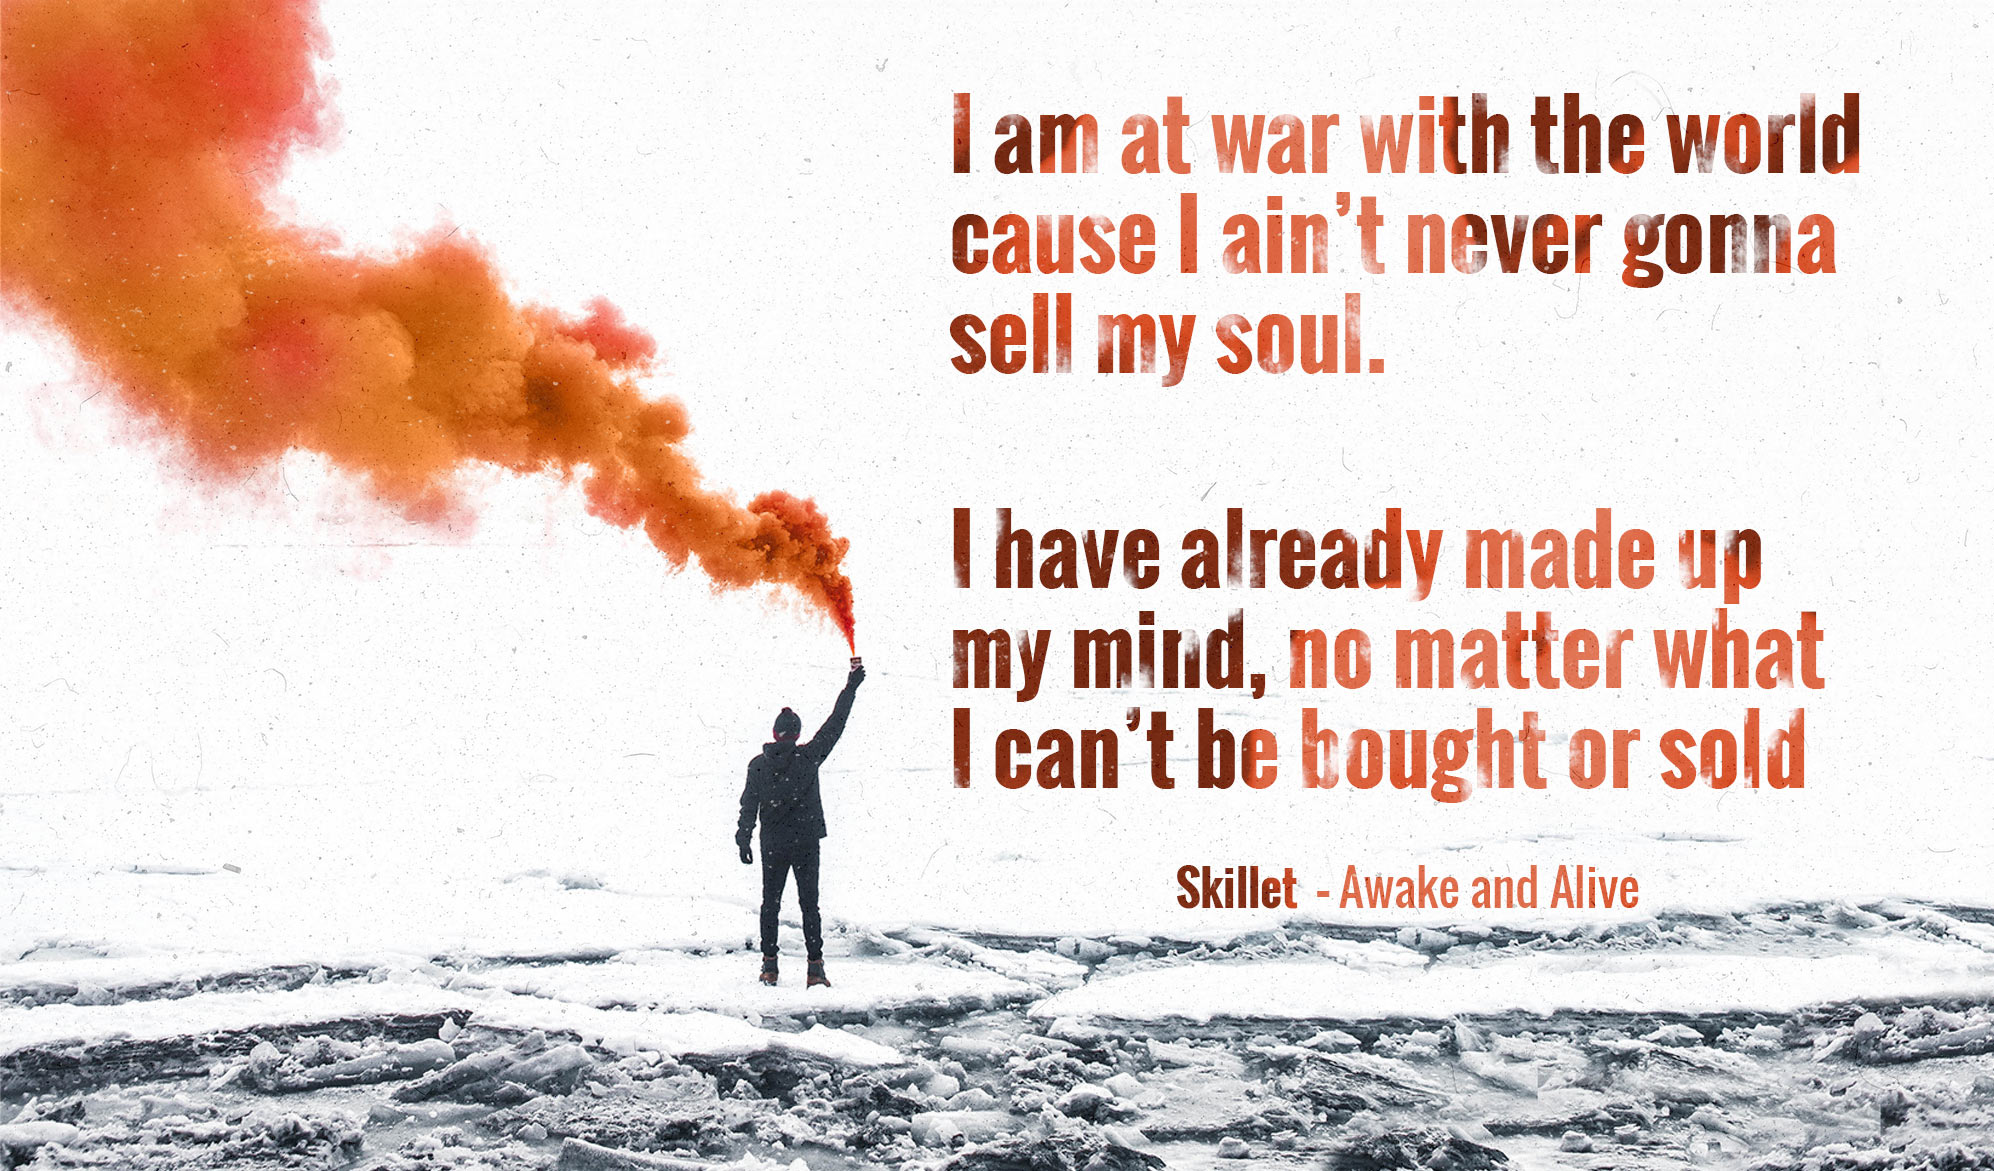 daily inspirational image quote:a black and white image of a man hodling a red flare, the only color present